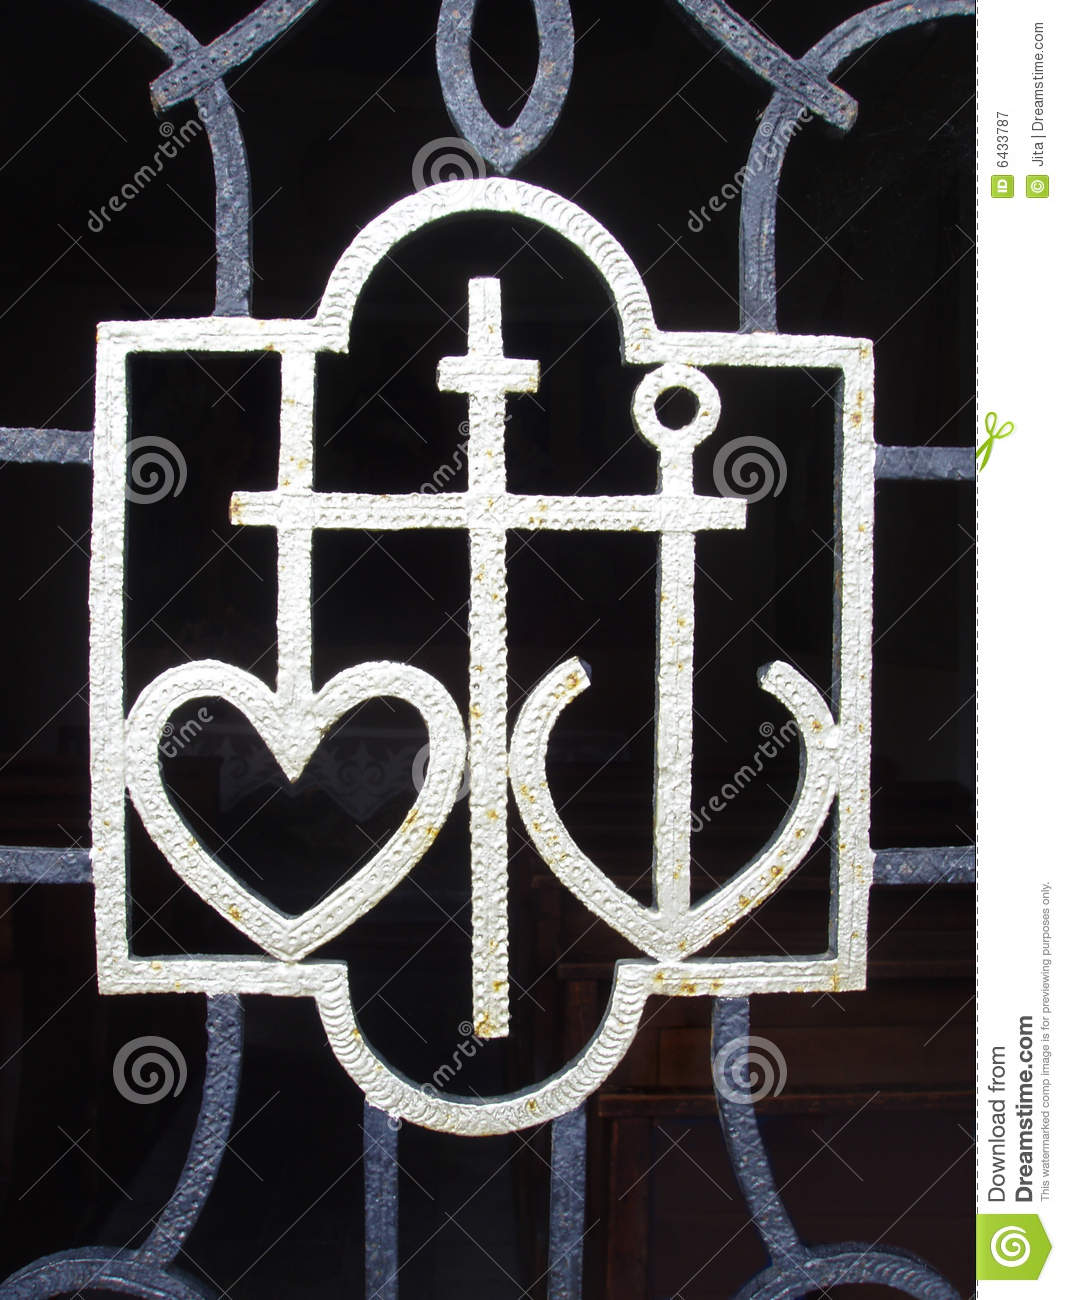 Anchor Heart and Cross